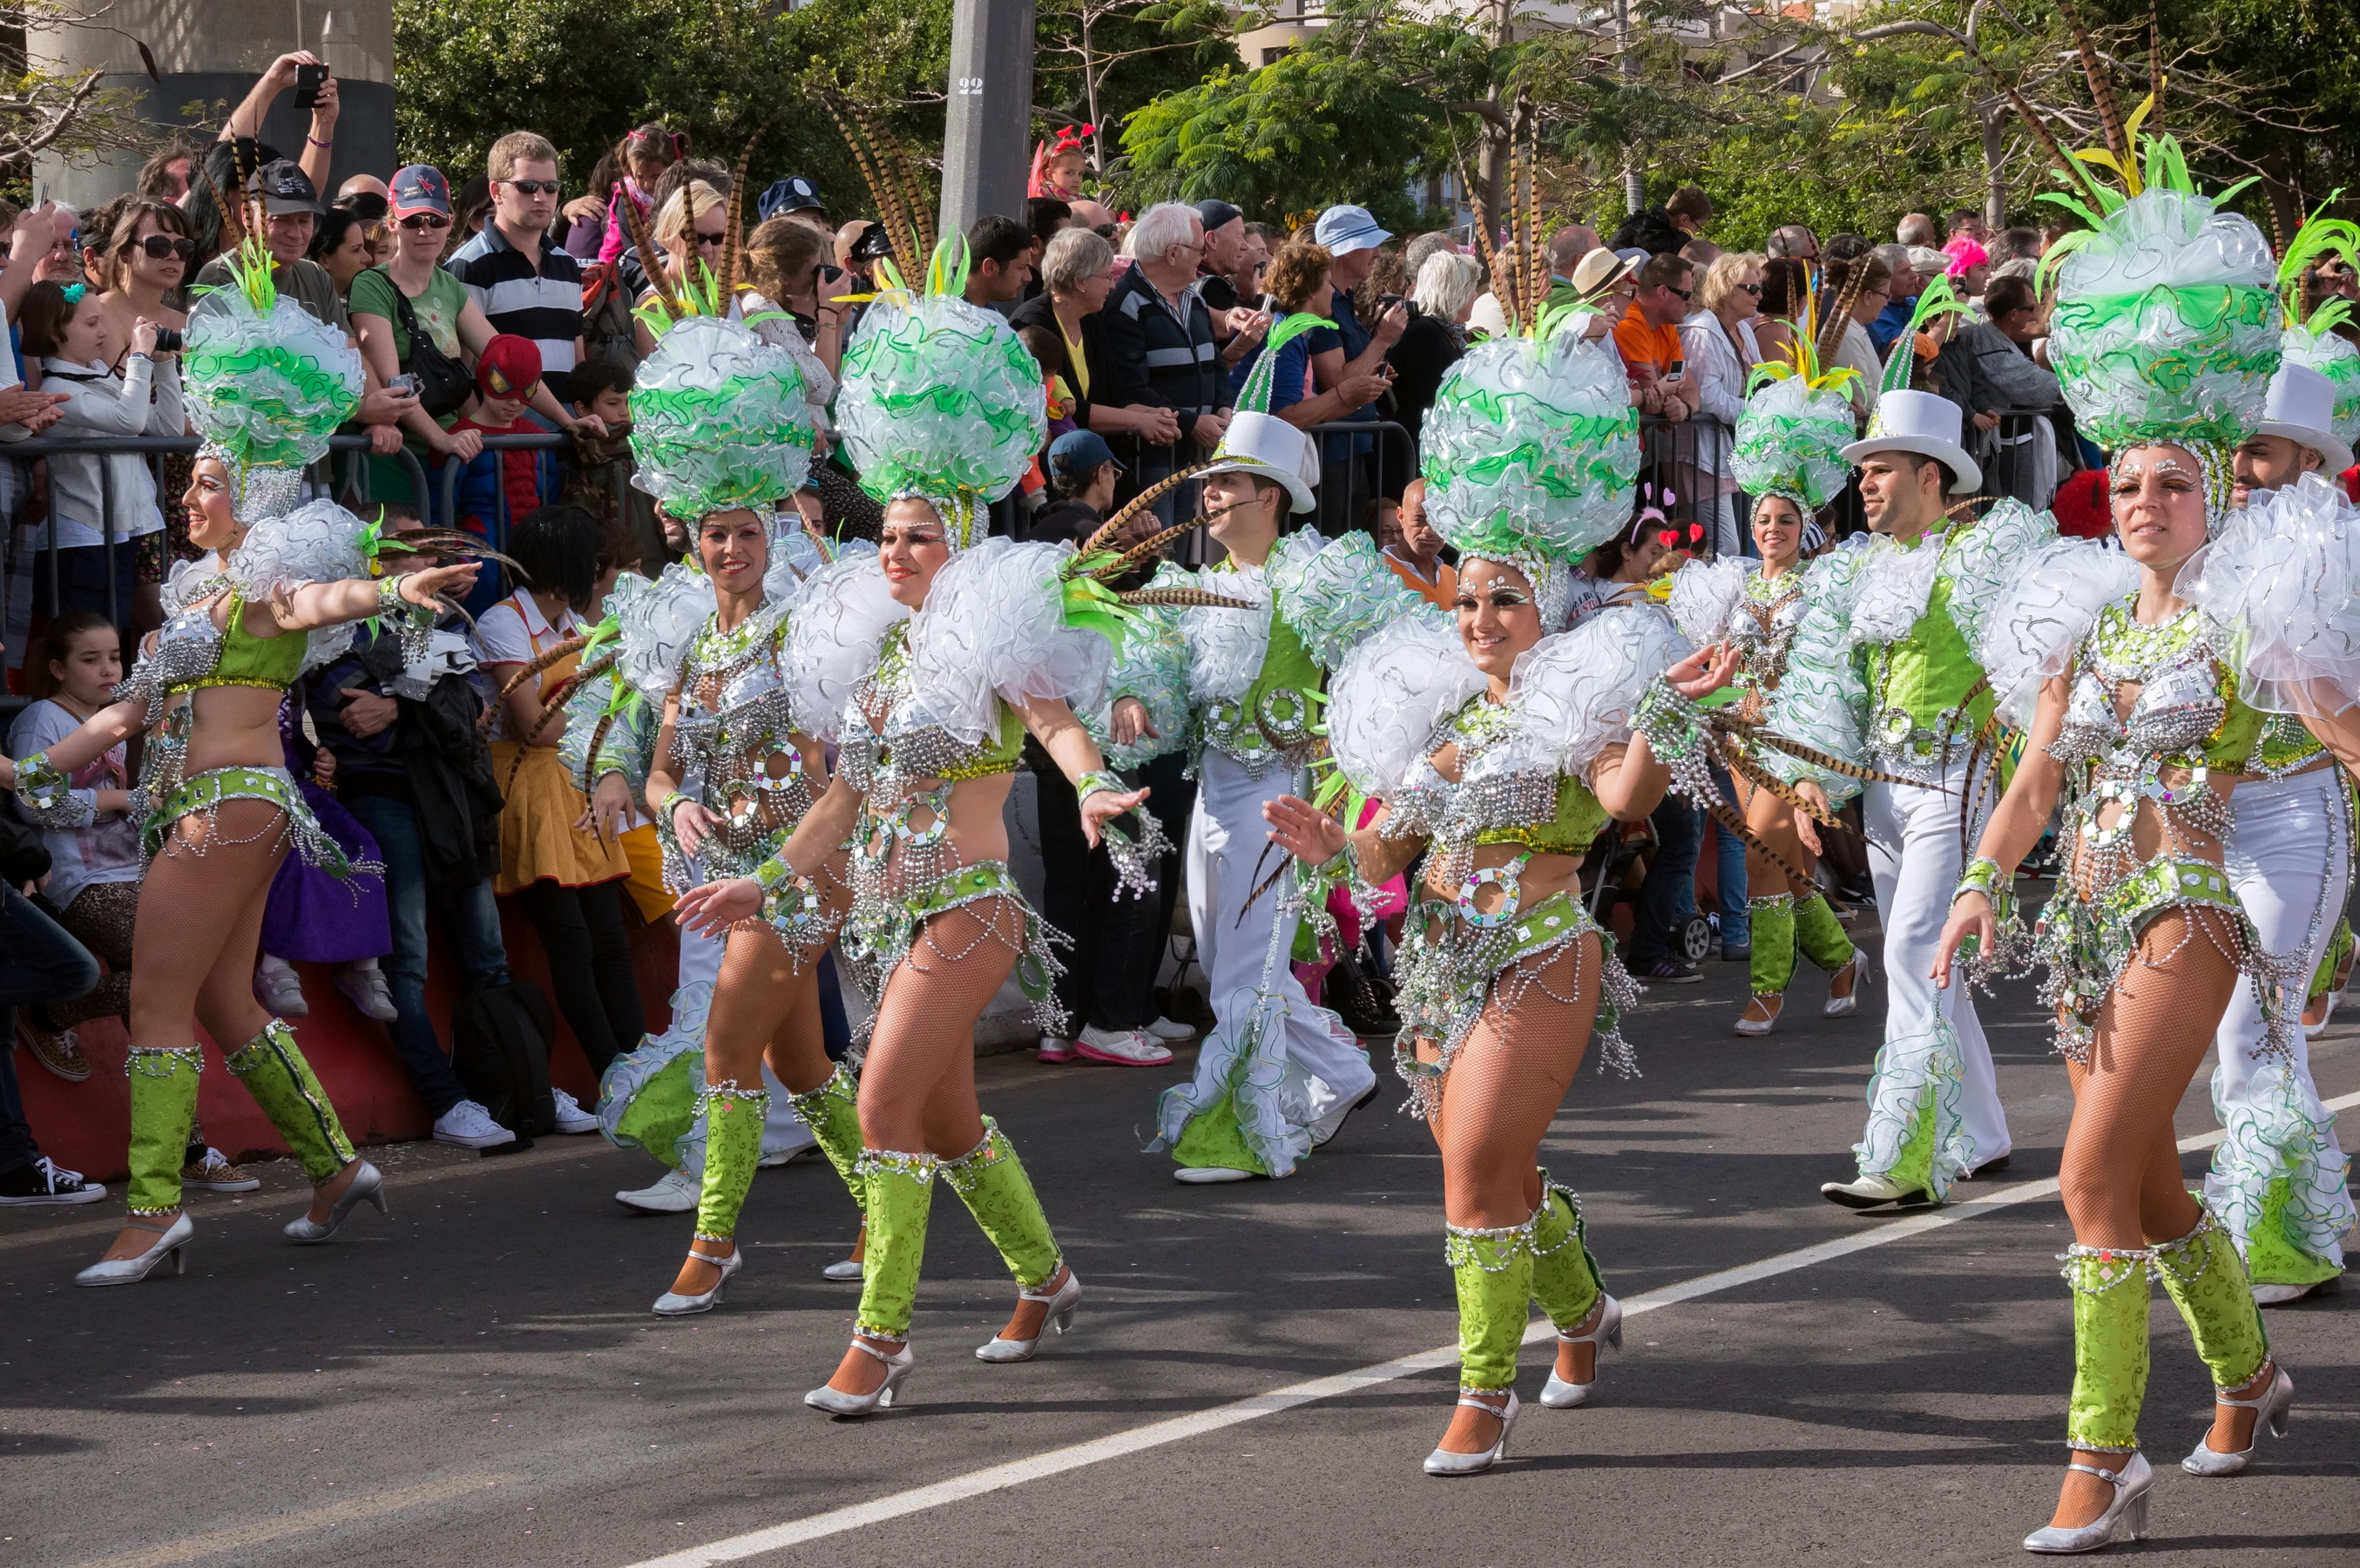 Costumed women competing for the title of Carnaval Queen at Tenerife Carnaval.